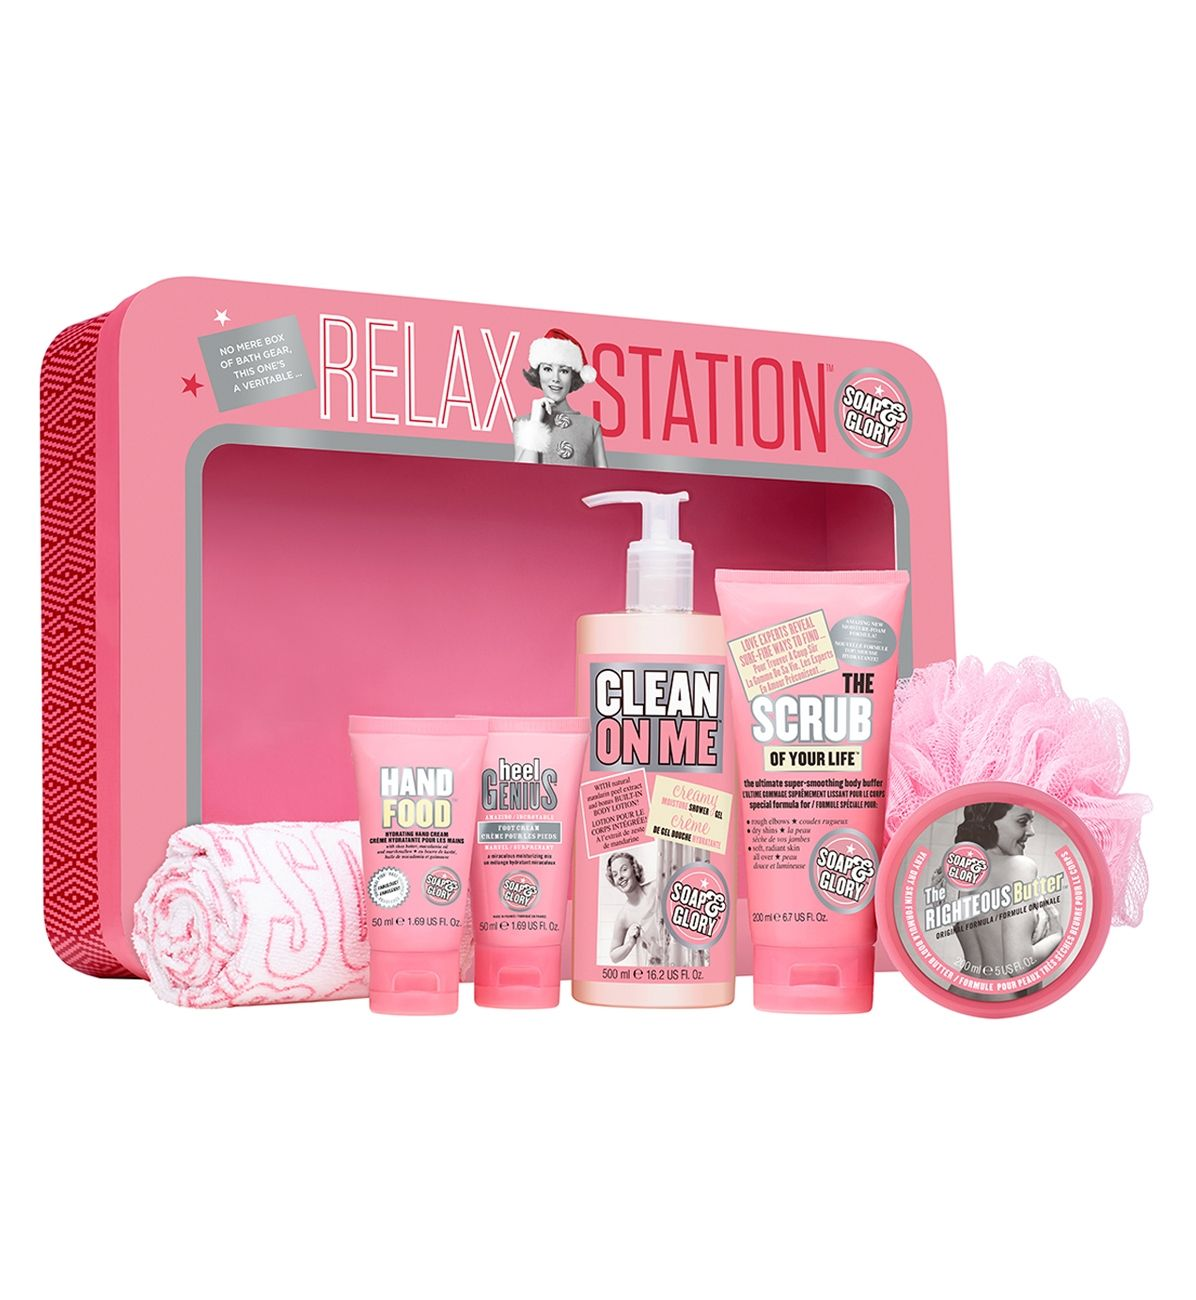 Soap and glory gift set Boots Soap and glory set, Soap